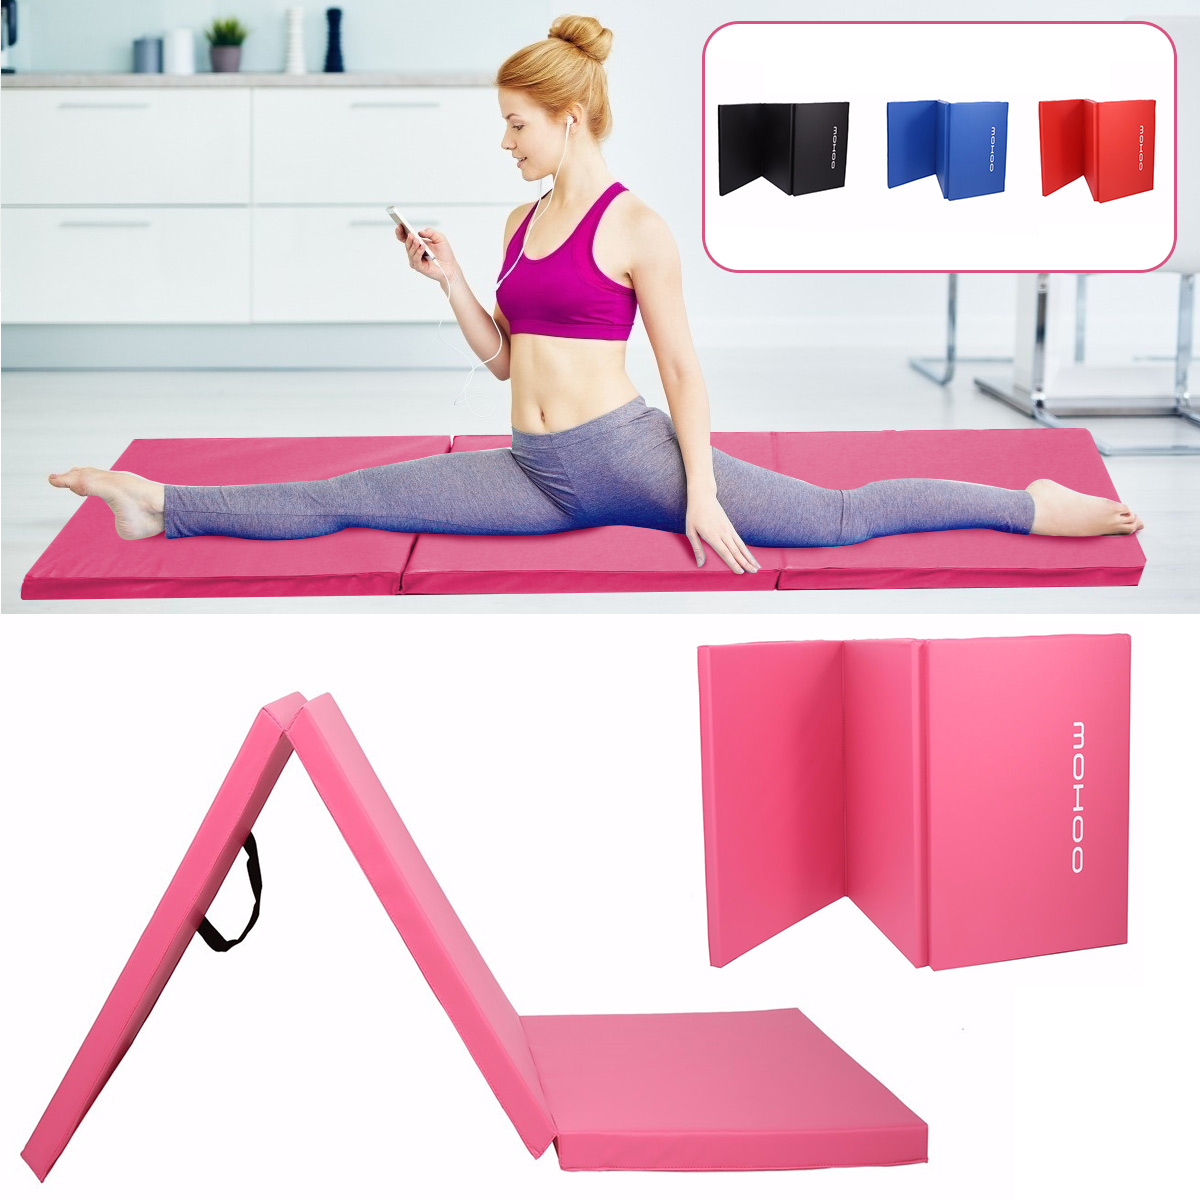 Dampproof Folding Yoga Mat Portable Gymnastics Gym Exercise Dancing Seat-up For Camping